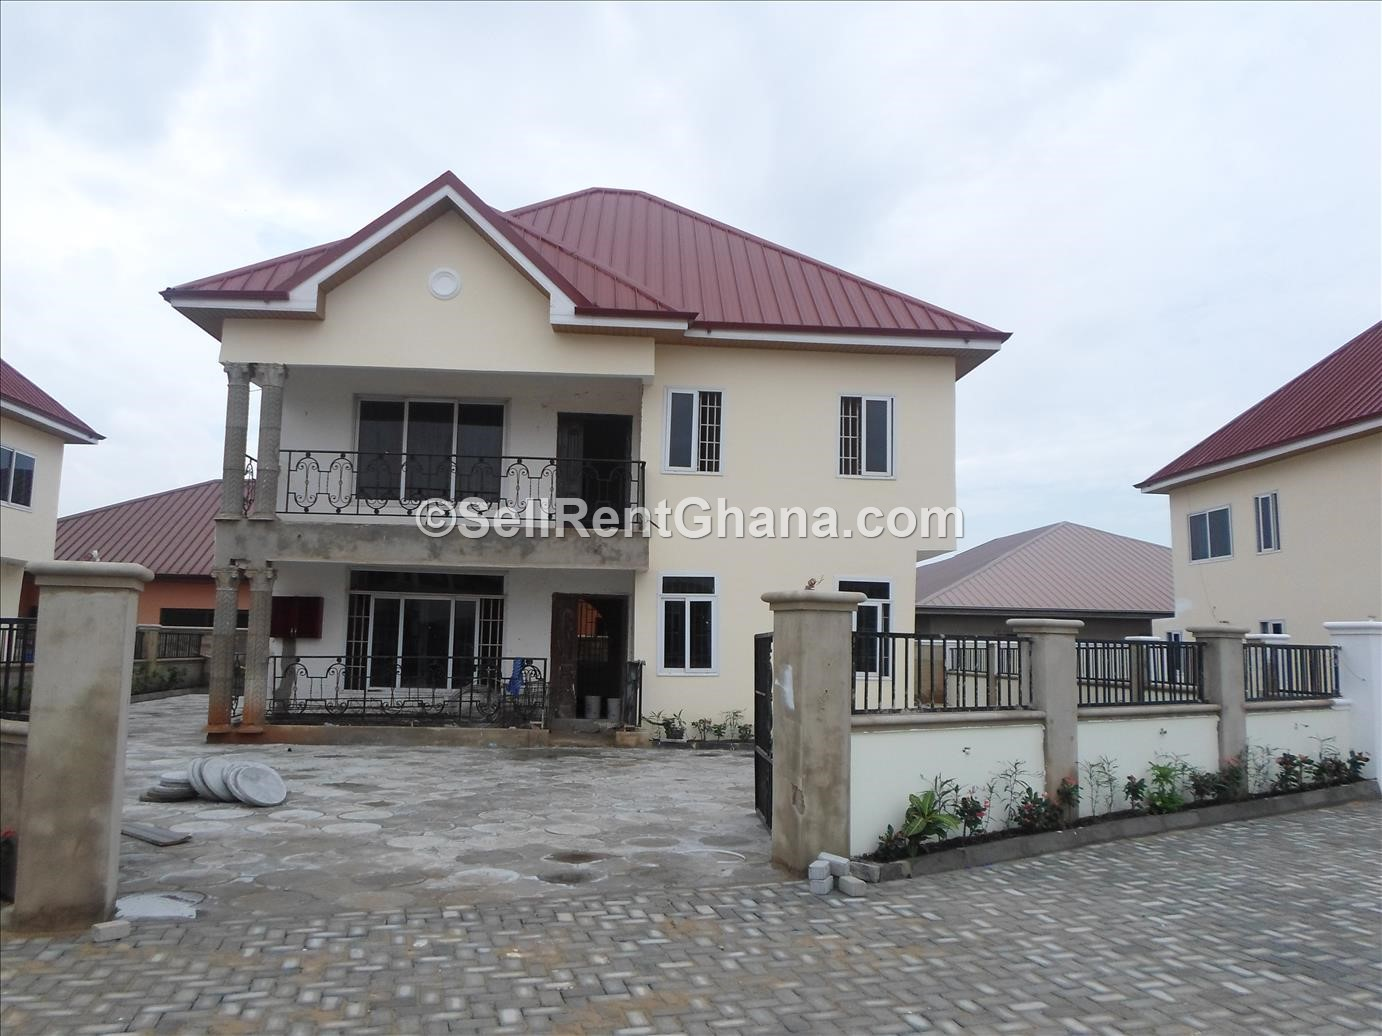 4 bedroom townhouses for sale tema comm 25 sellrent ghana. Black Bedroom Furniture Sets. Home Design Ideas